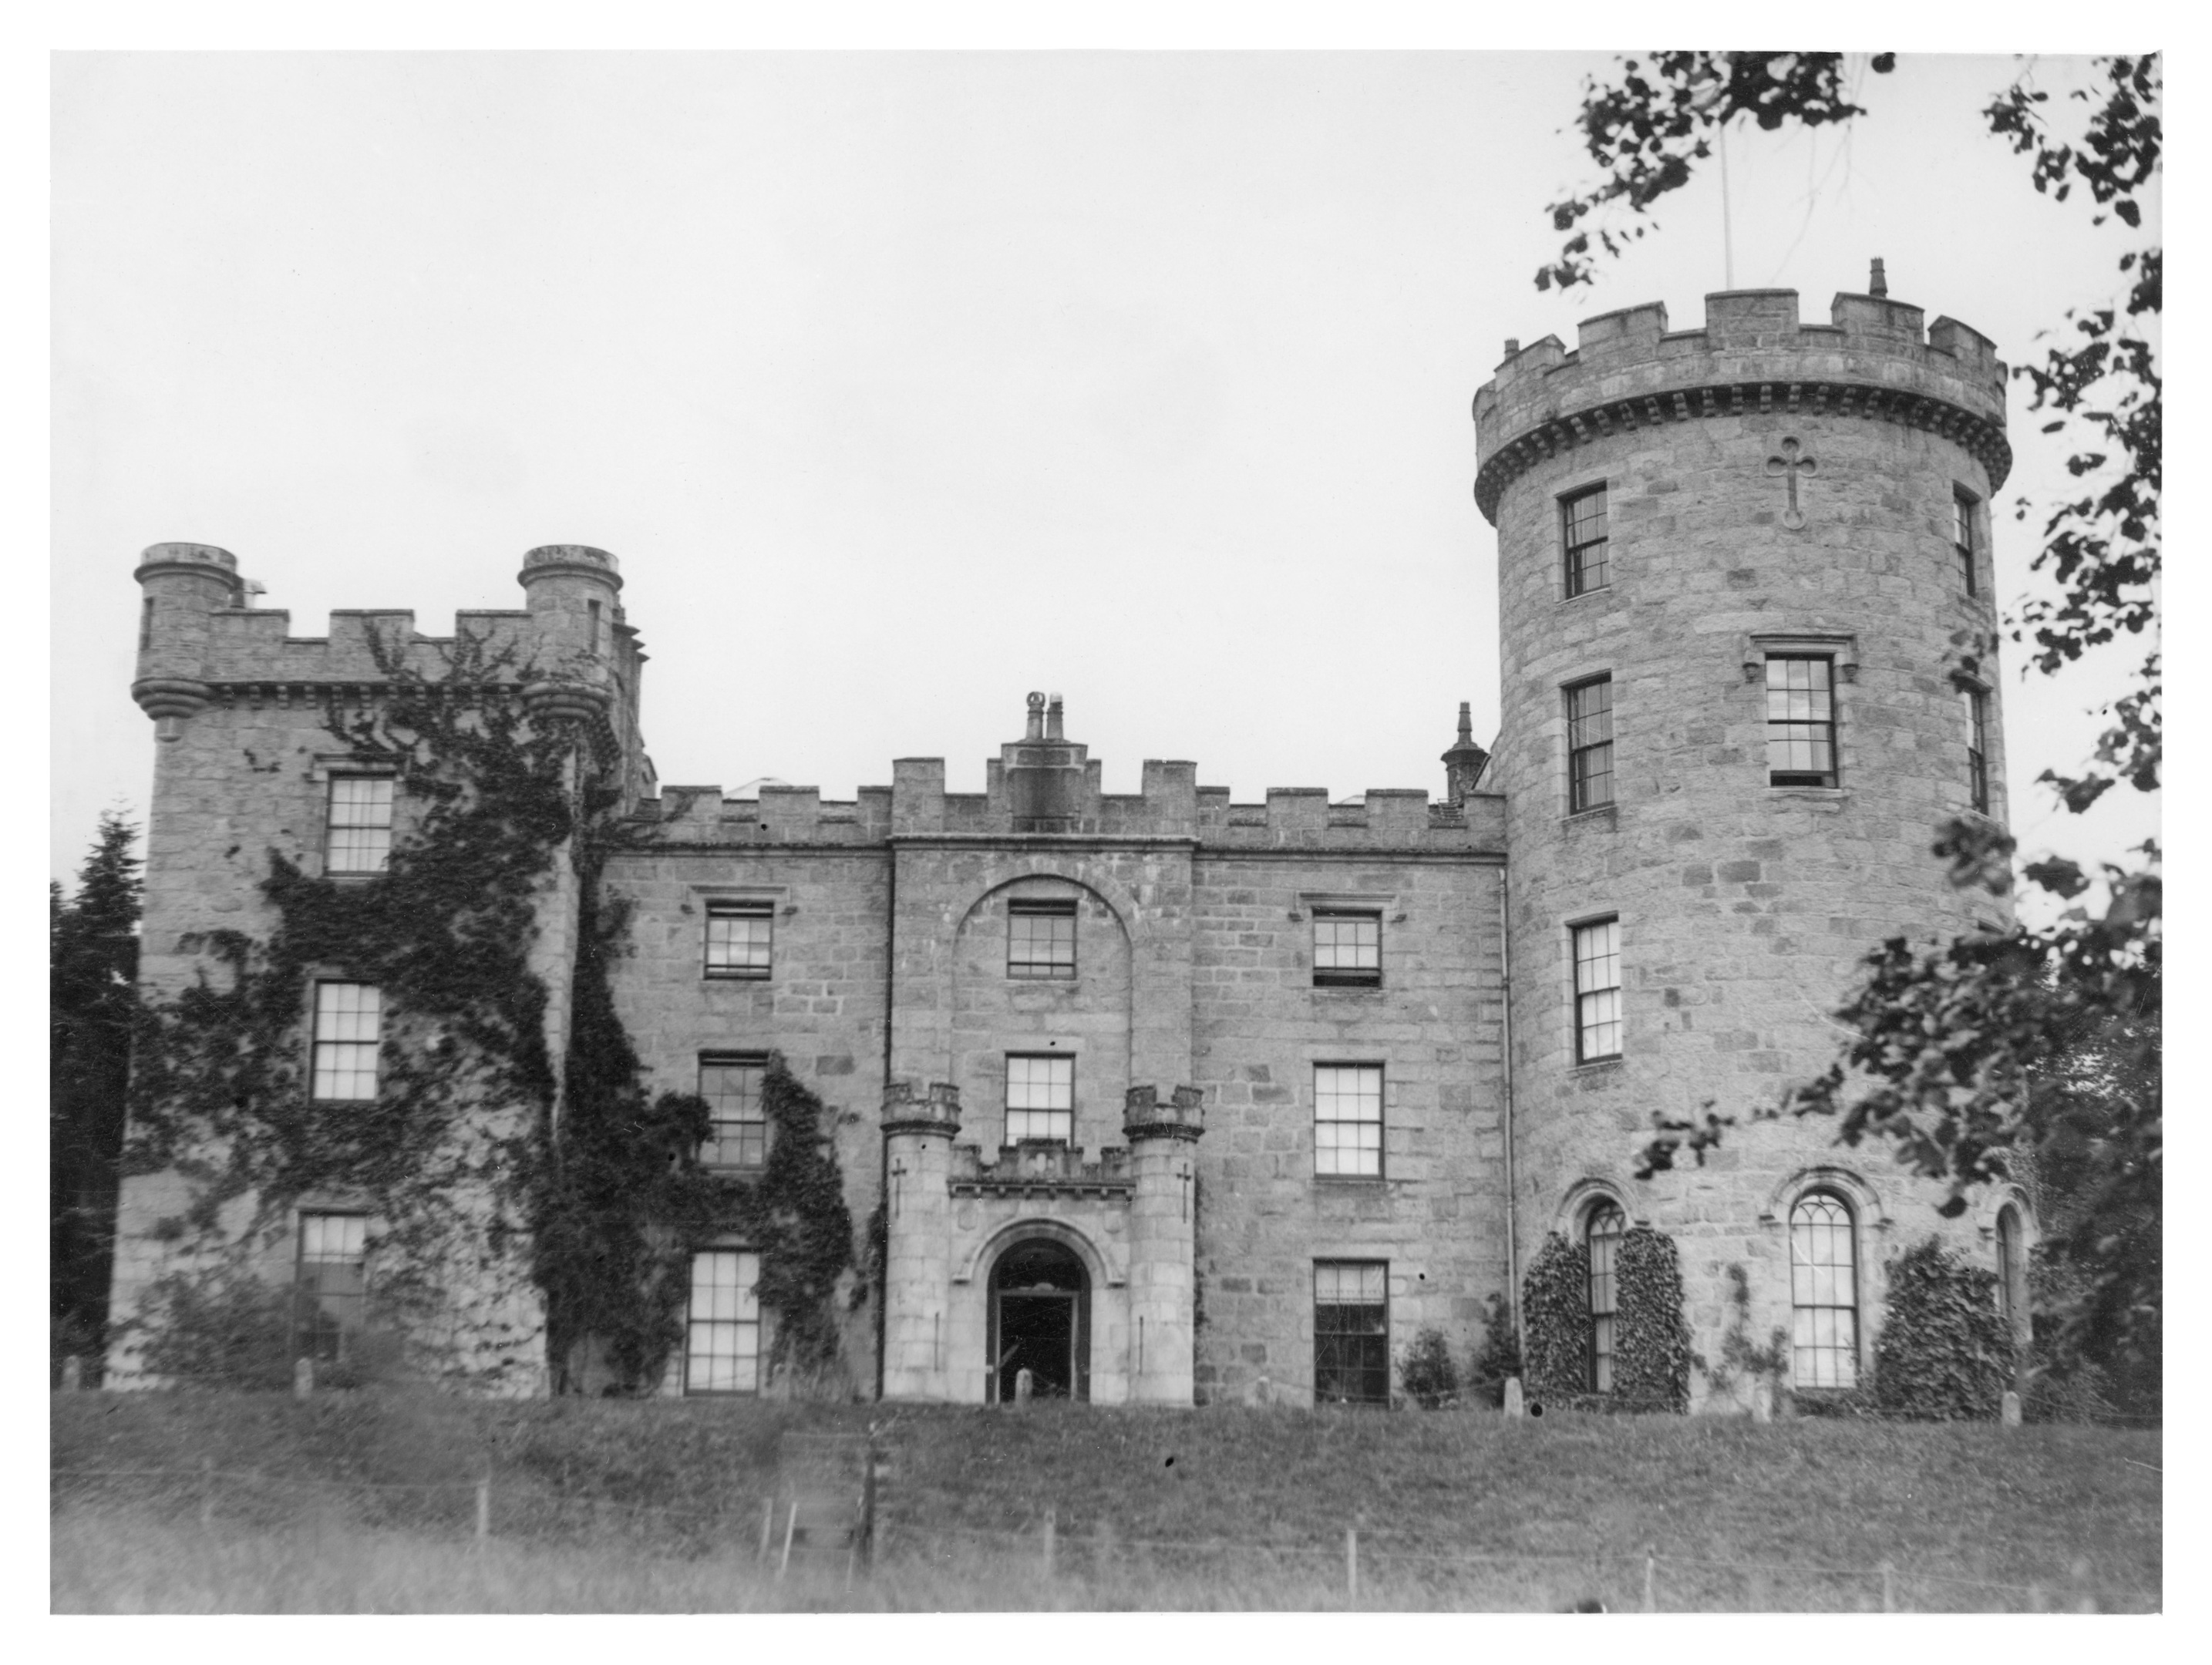 Castle Forbes near Alford, was built in the early 19th century, in the Scottish baronial style.